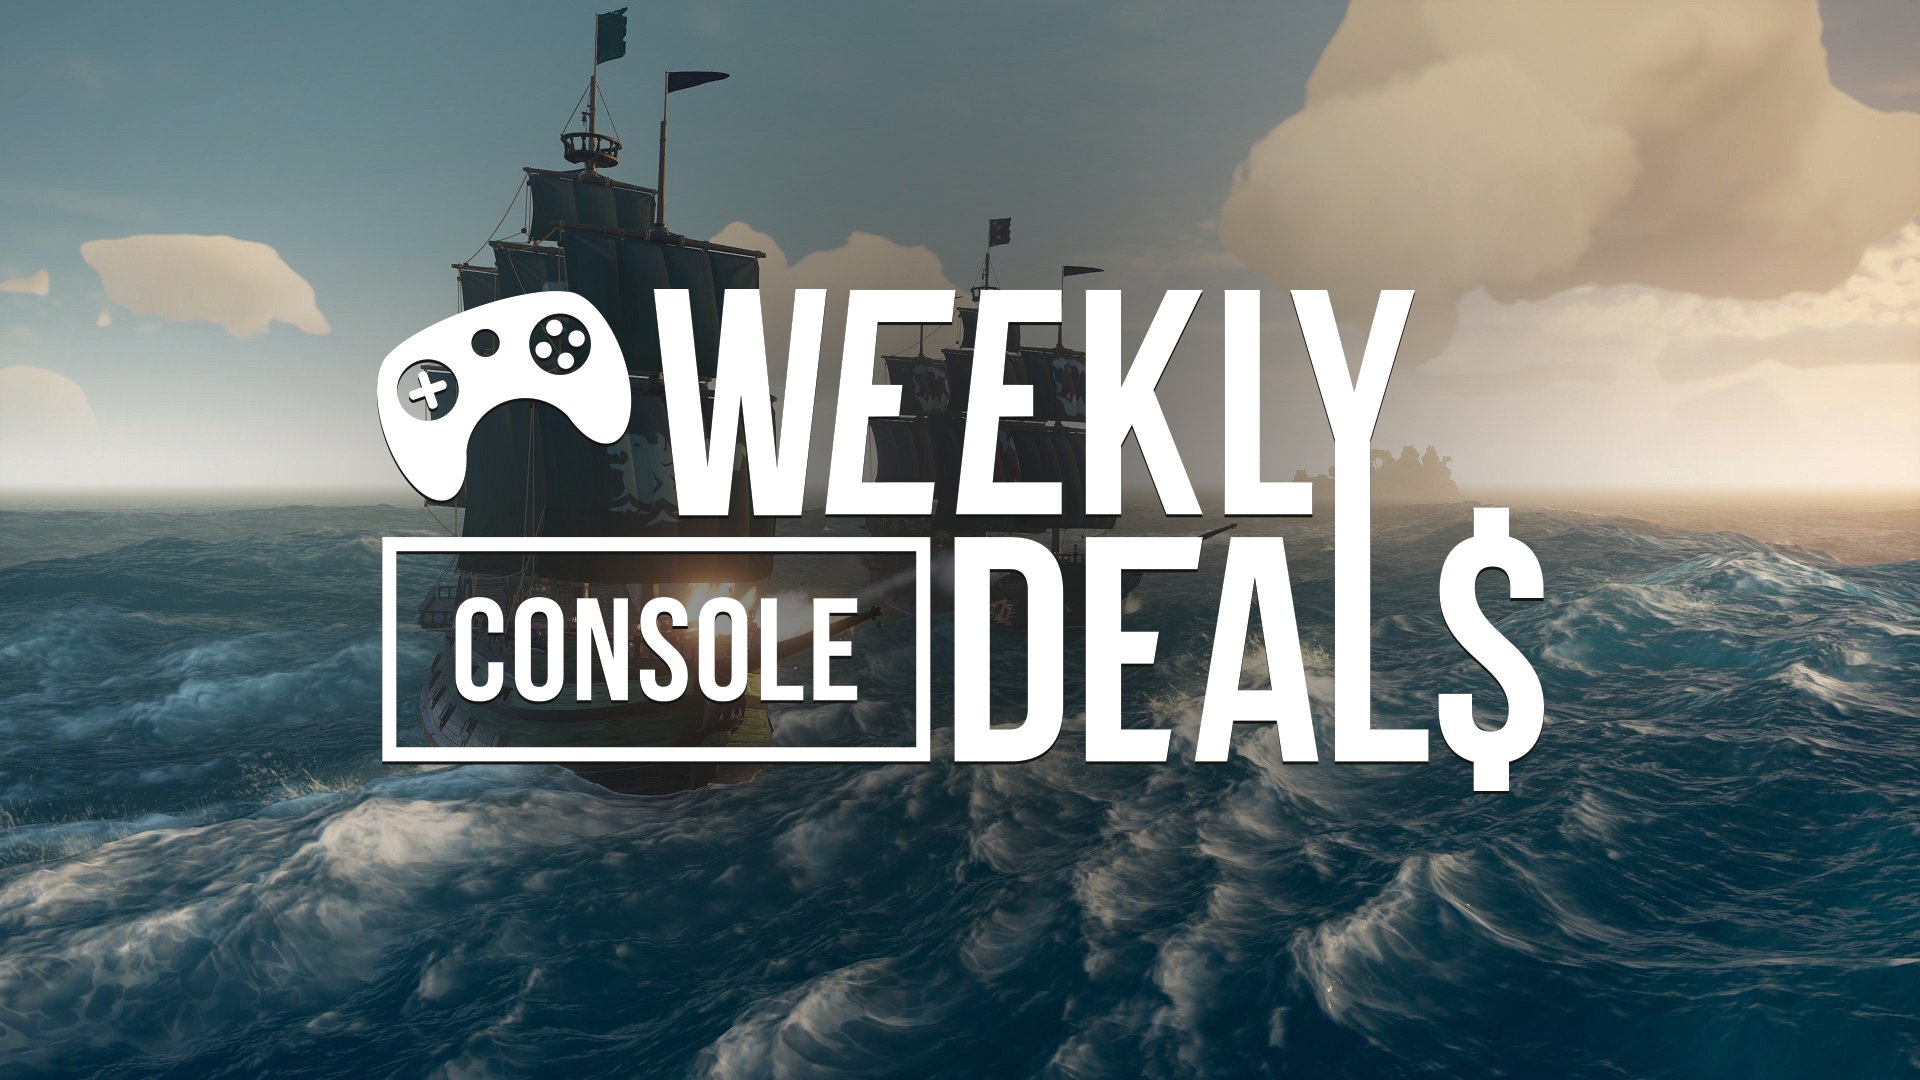 weekend console download deals for 9  21  microsoft publisher sale  playstation flash sale